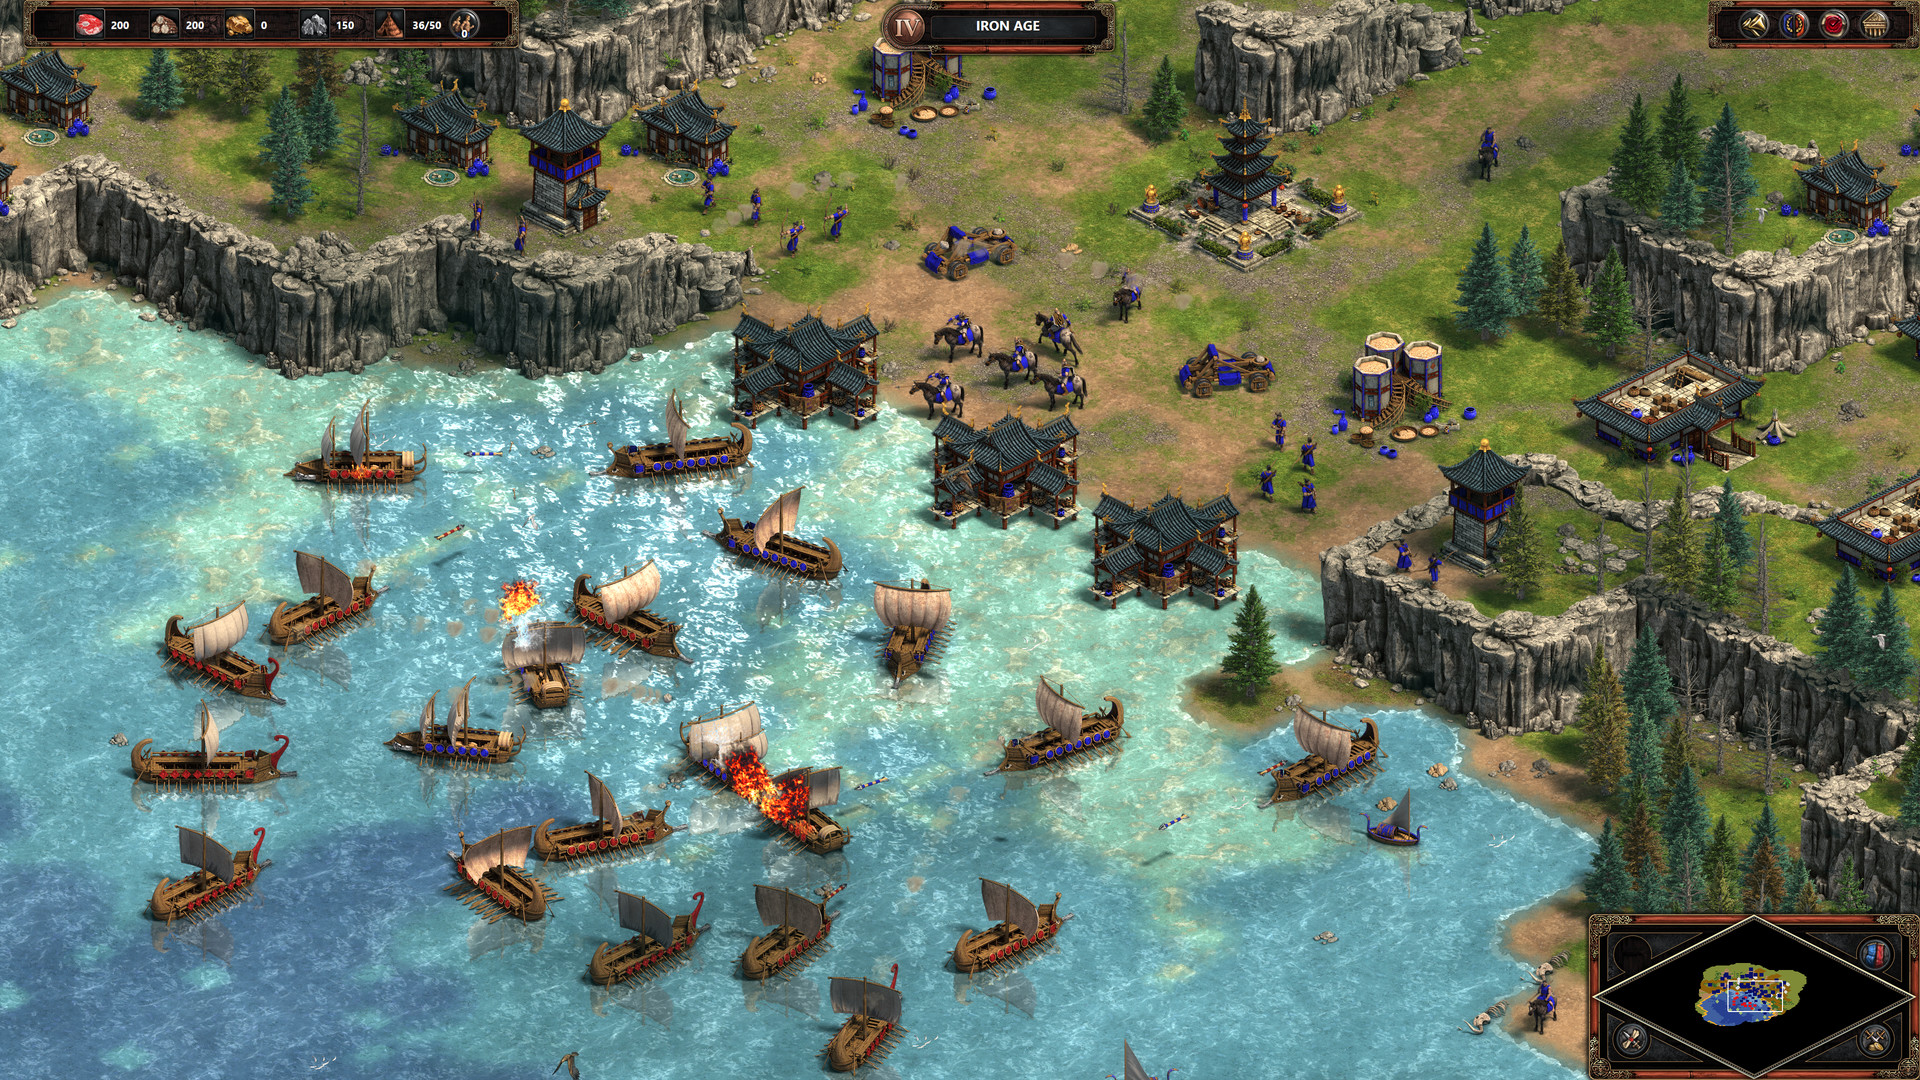 Link Tải Game Age of Empires Definitive Edition Miễn Phí Thành Công